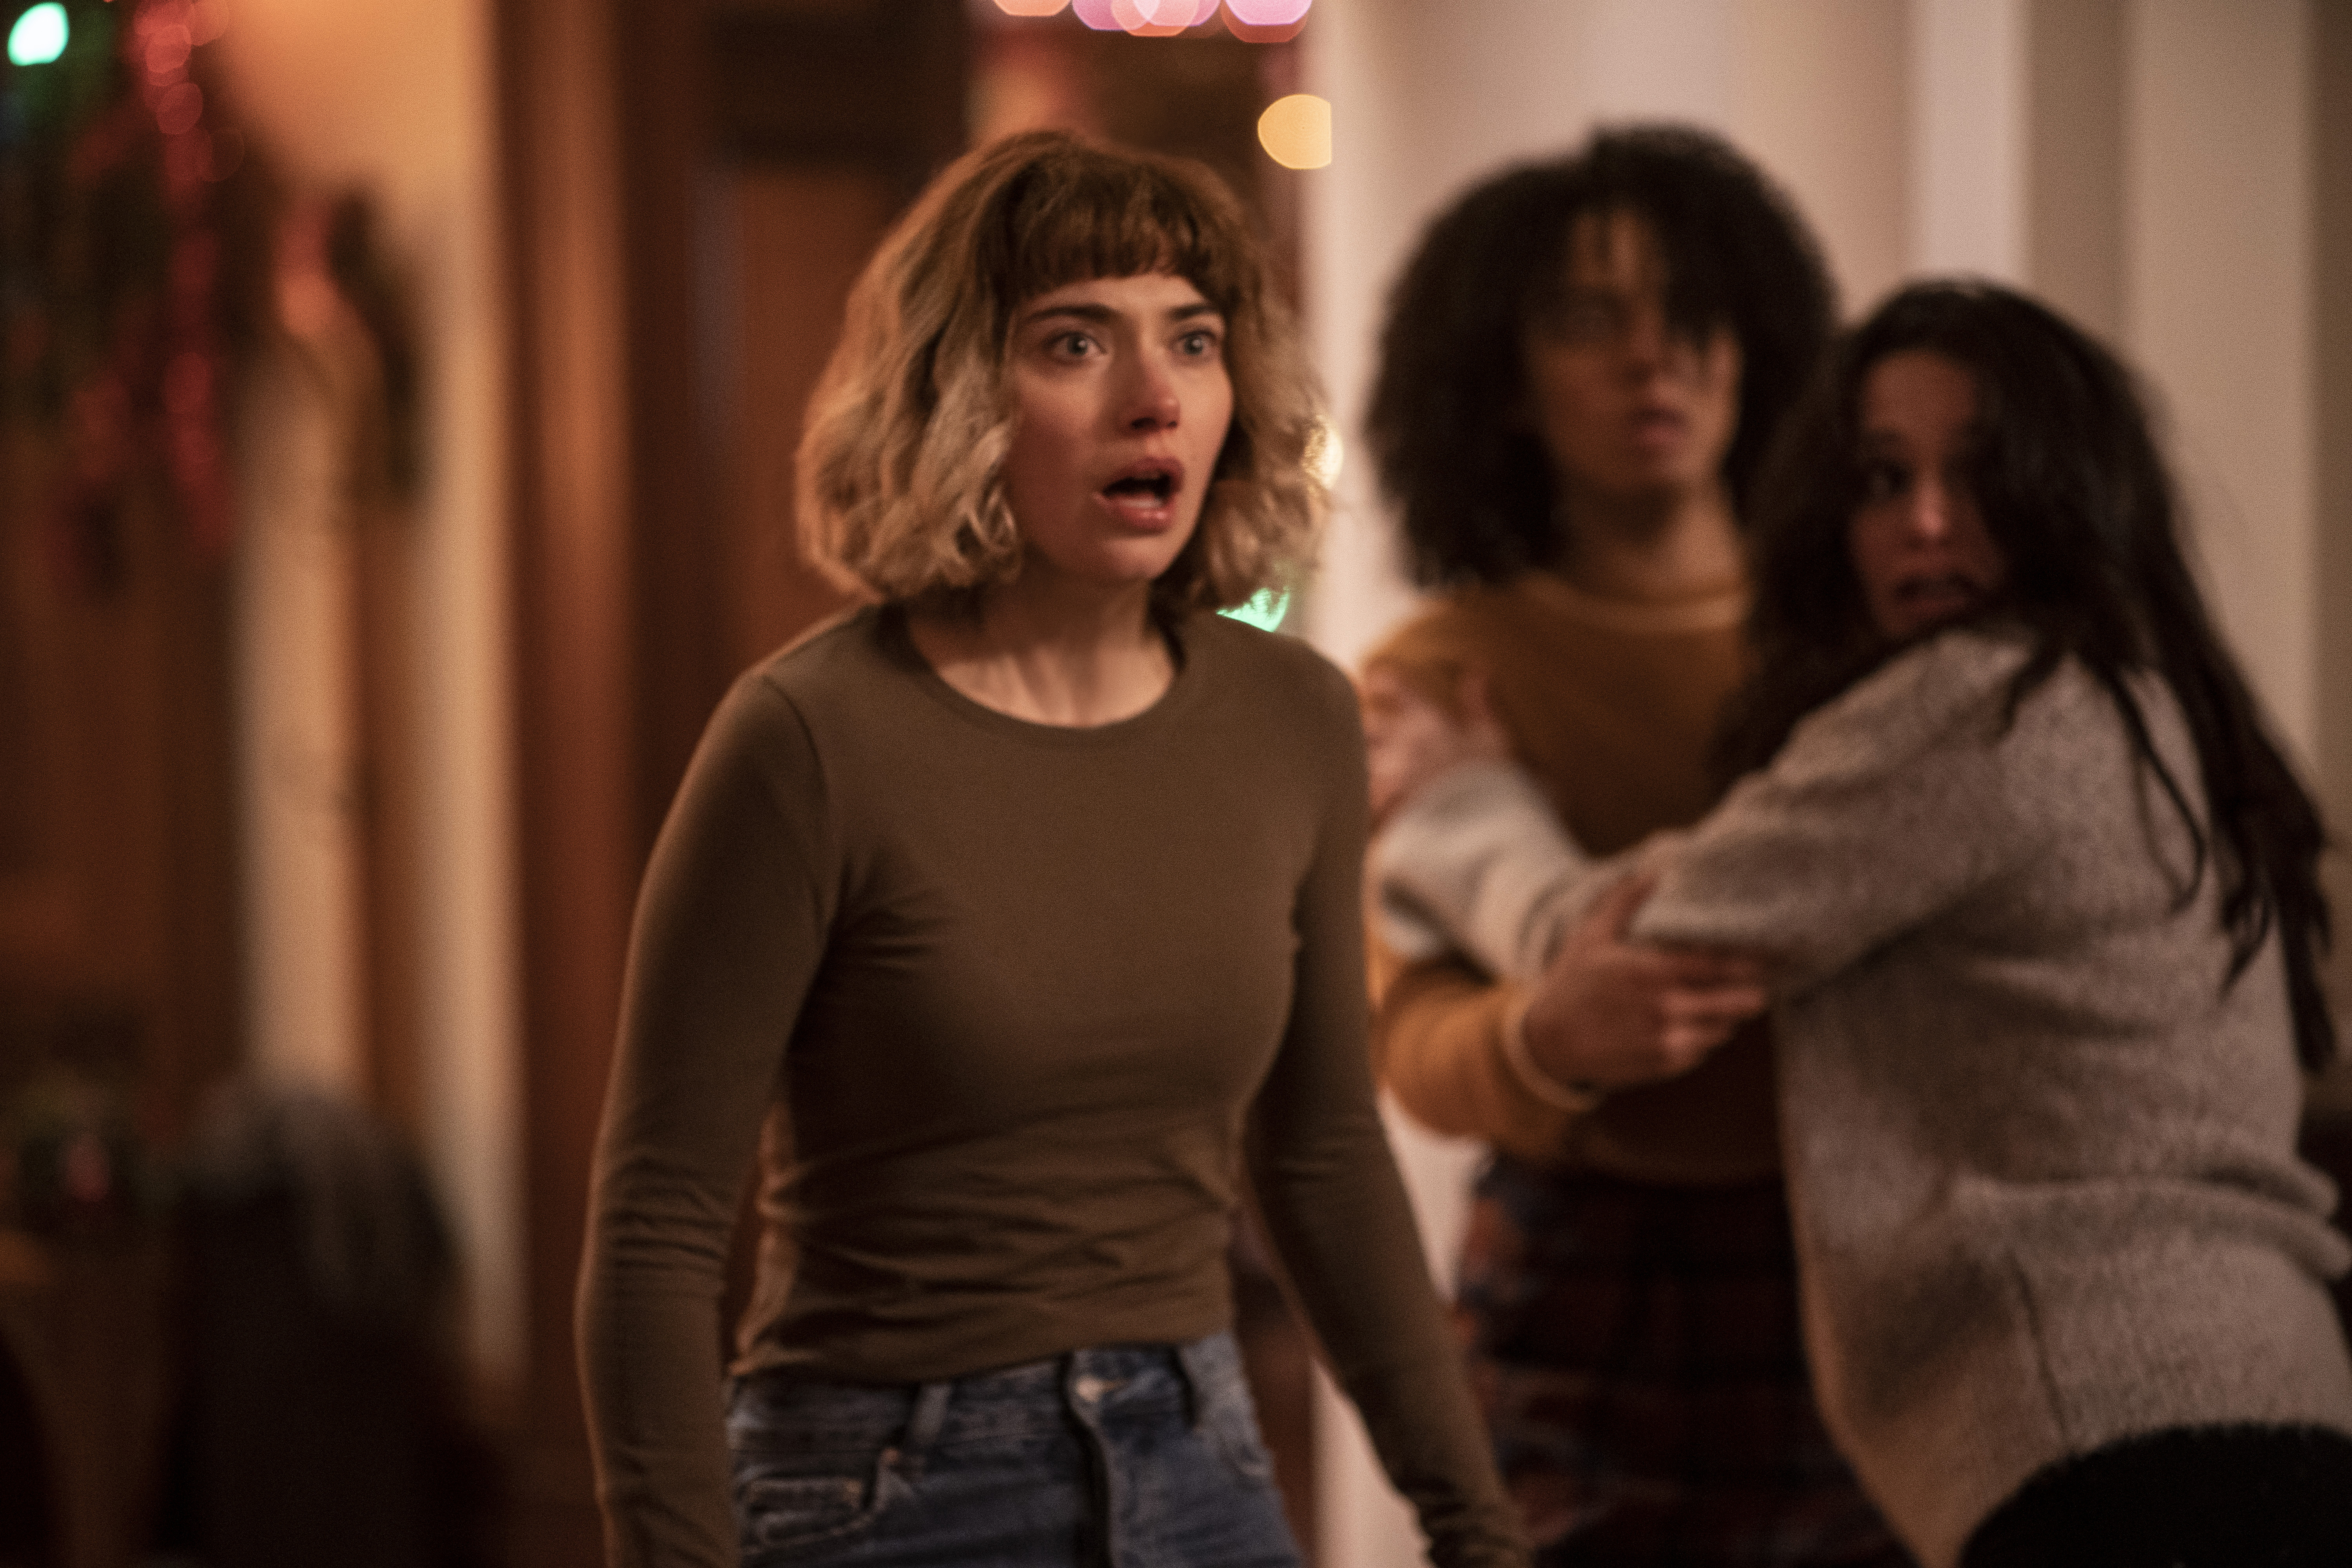 """(from left) Riley (Imogen Poots), Kris (Aleyse Shannon) and Marty (Lily Donoghue) in """"Black Christmas,"""" co-written and directed by Sophia Takal."""